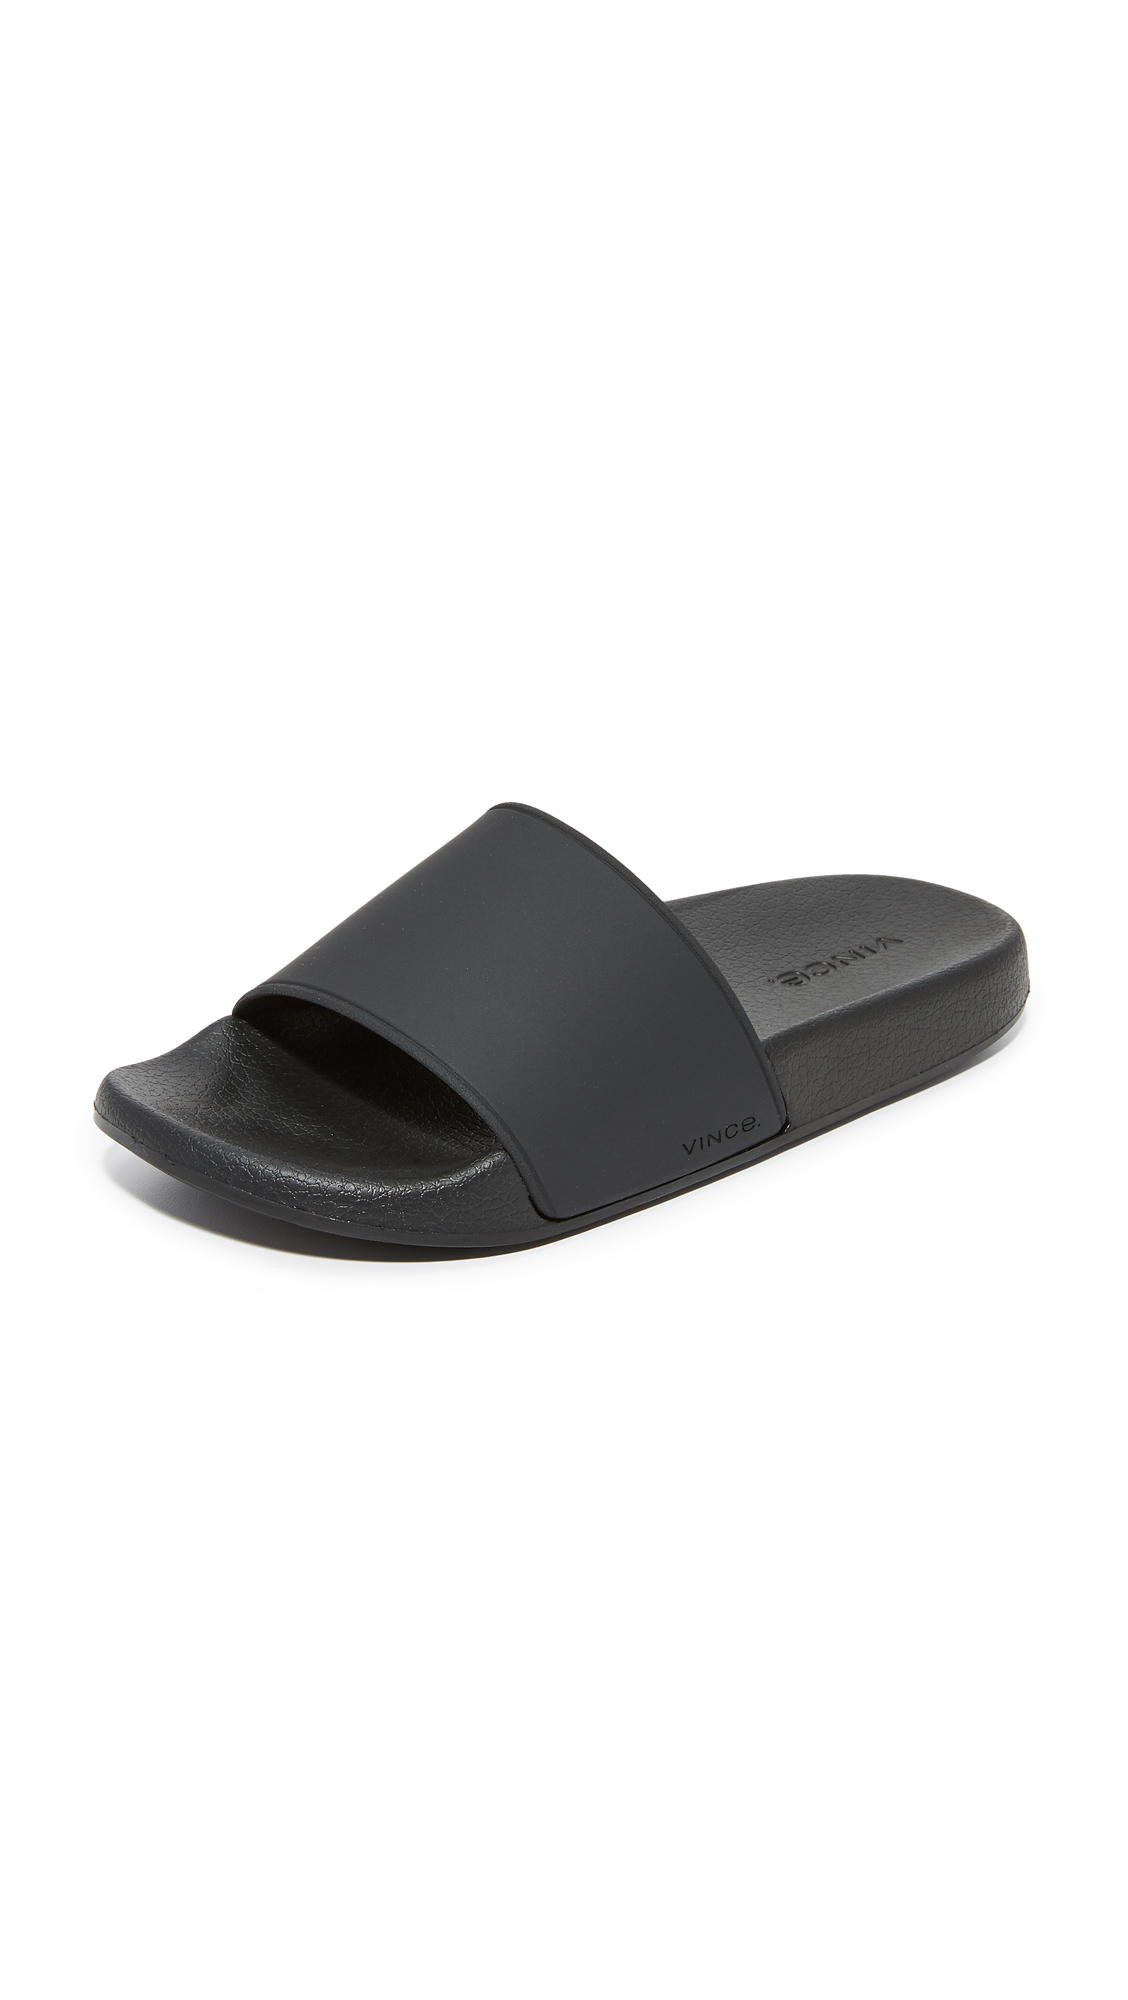 Vince Westcoast Slide Sandals - Black